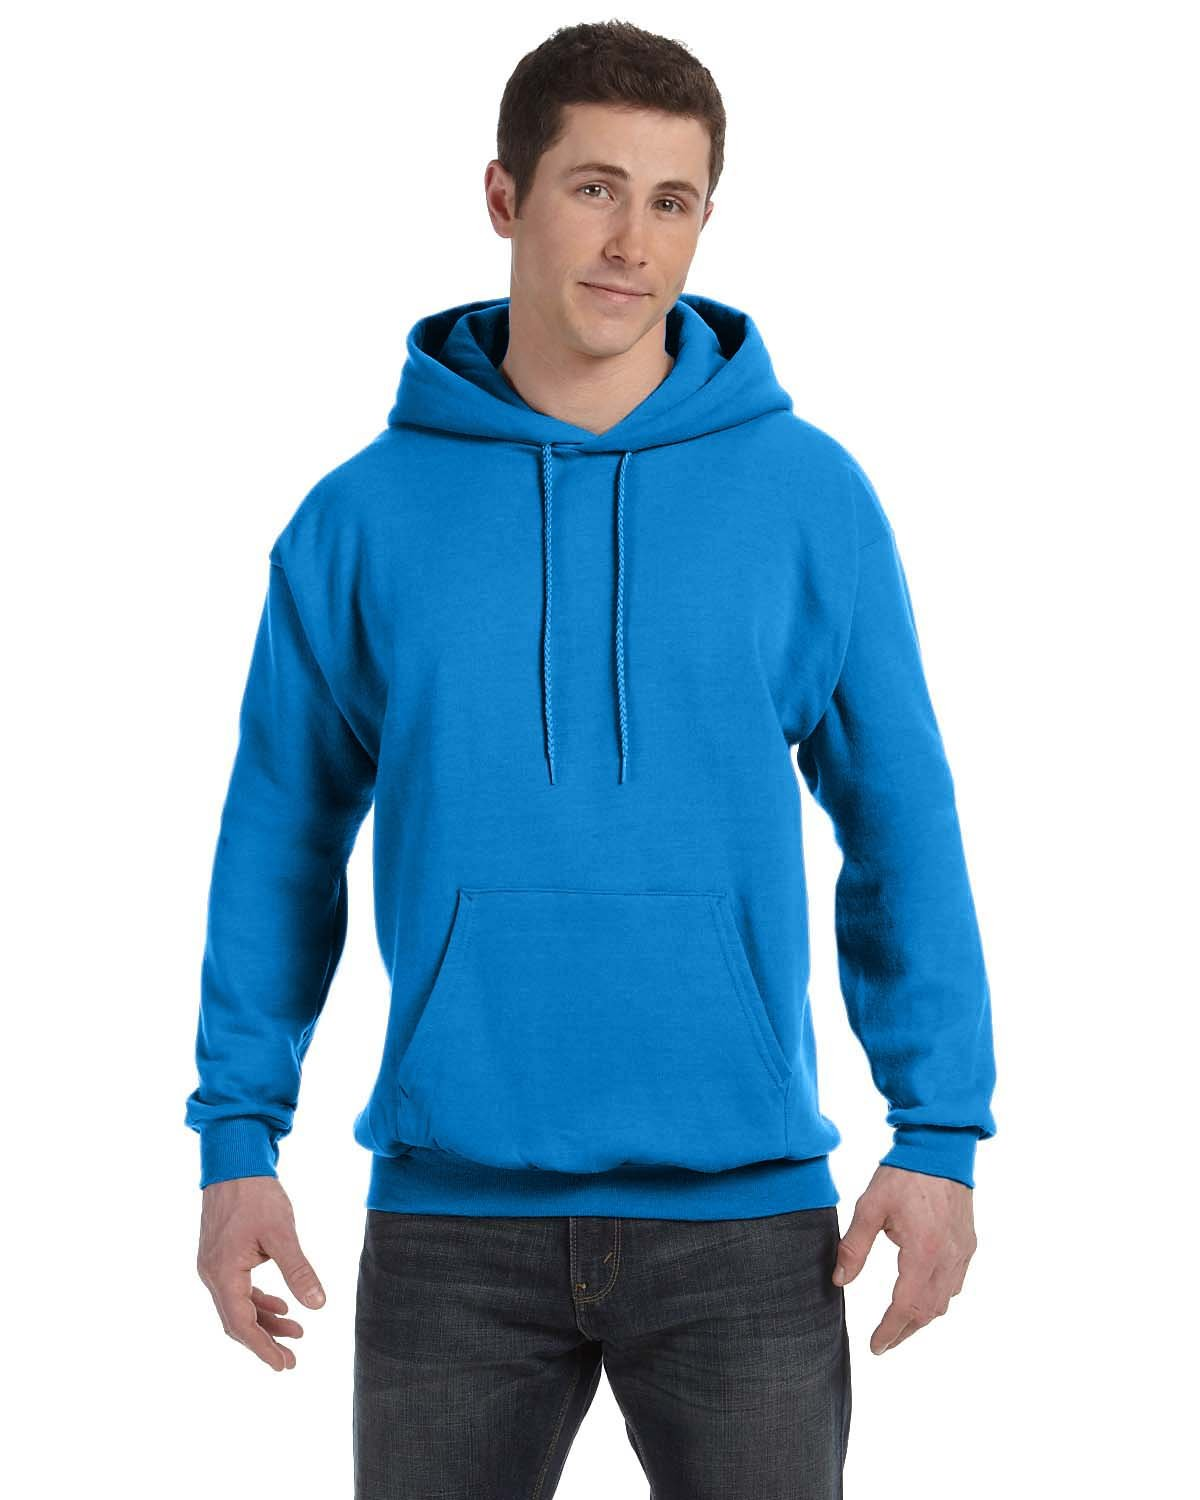 Hanes Unisex Ecosmart® 50/50 Pullover Hooded Sweatshirt BLUEBELL BREEZE